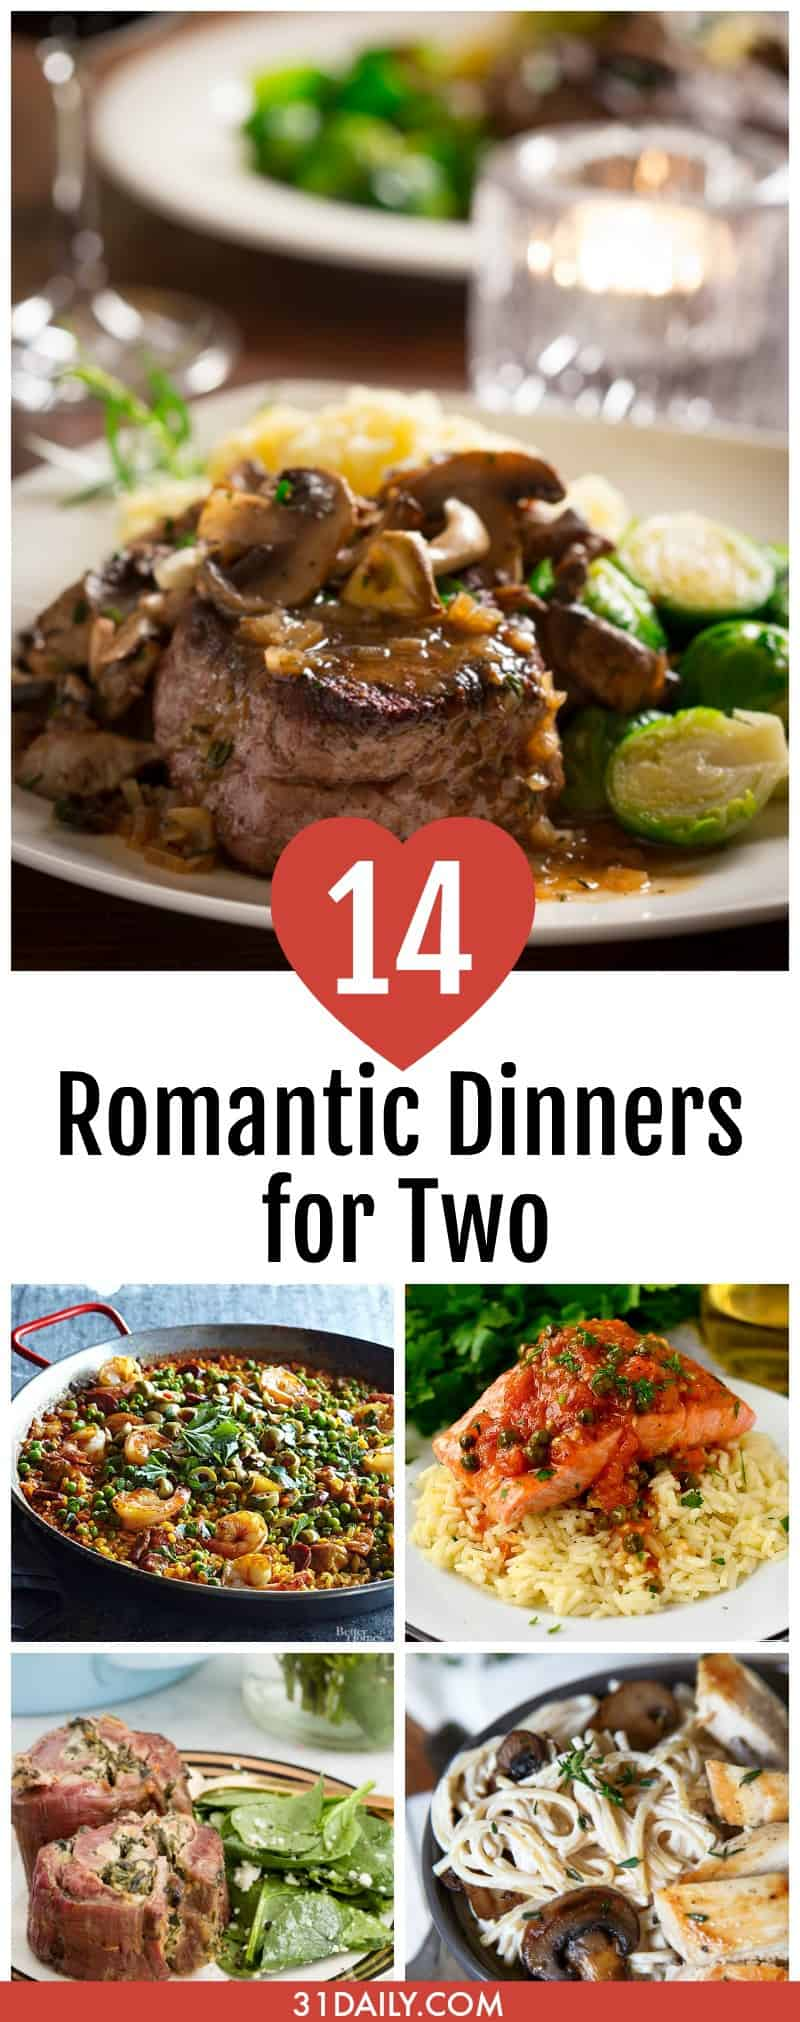 14 Romantic Dinners for Two | 31Daily.com